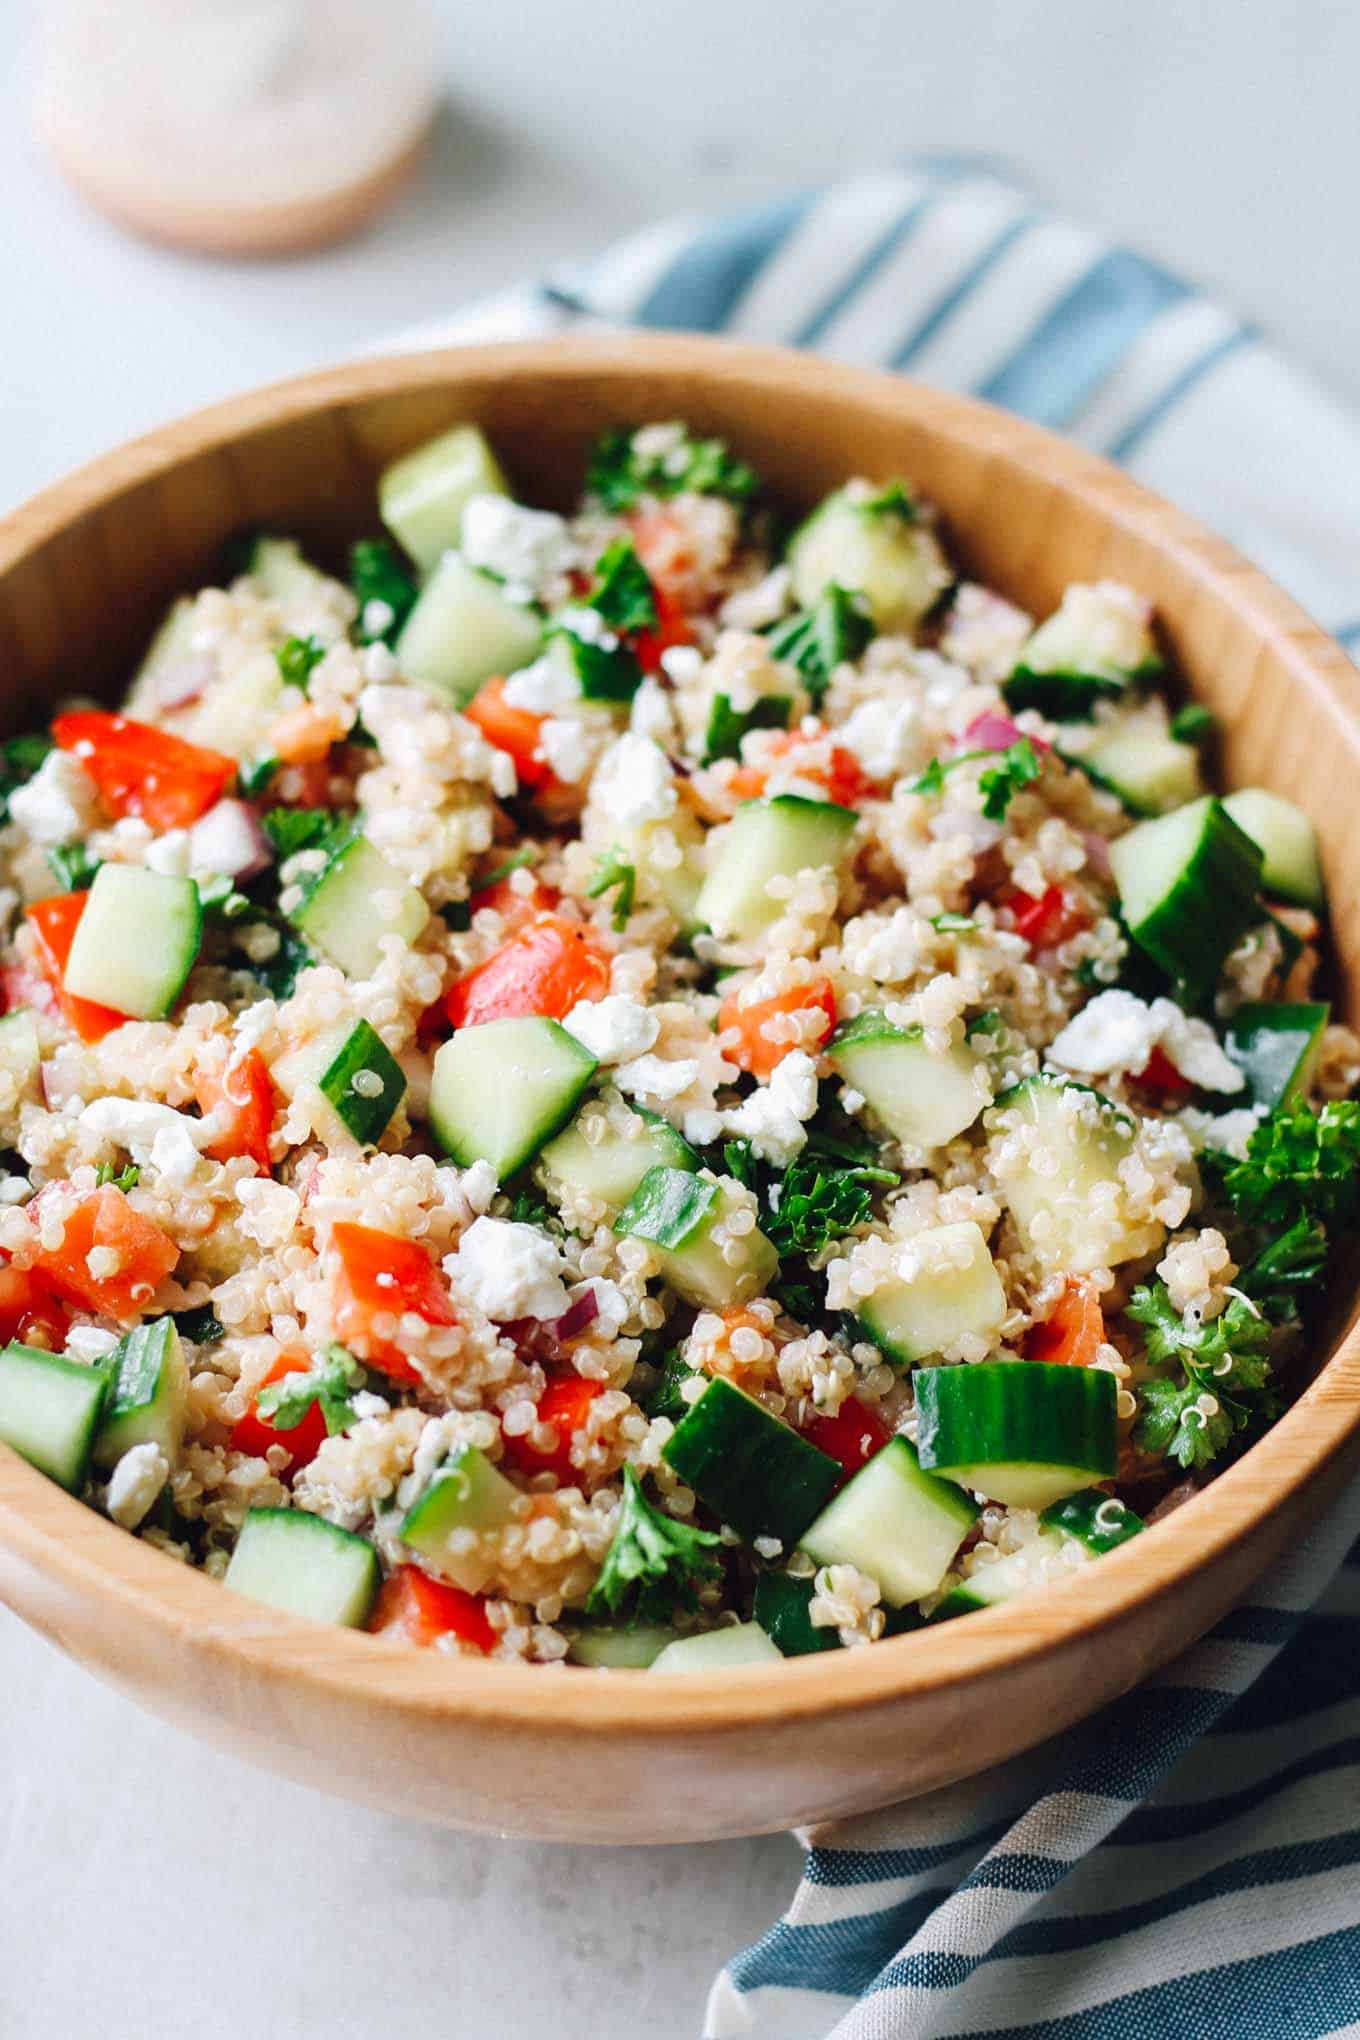 The Greek Quinoa Salad in a wooden bowl with a close up on the ingredients